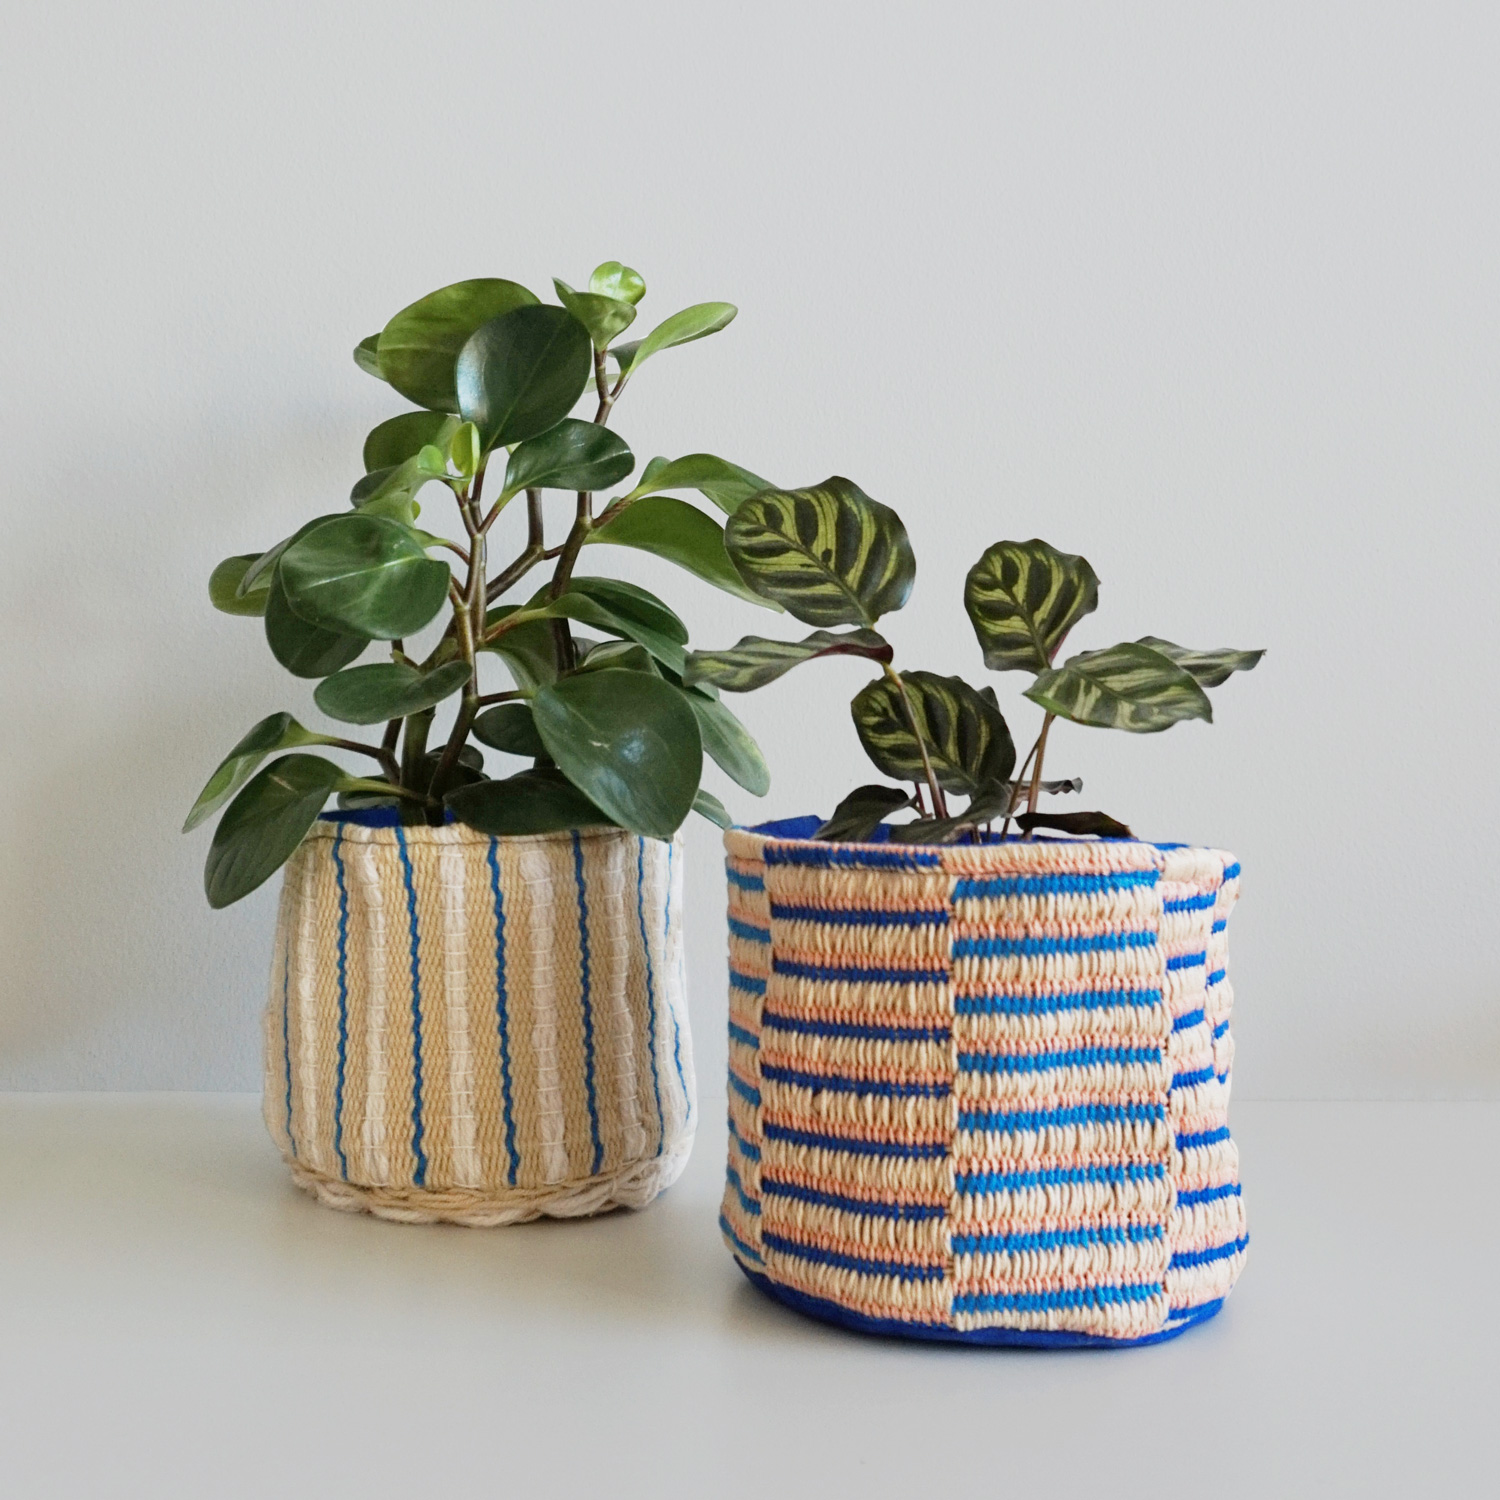 Small striped baskets with a woven texture make the perfect home for your favorite plants, current knitting project or washi tape collection.